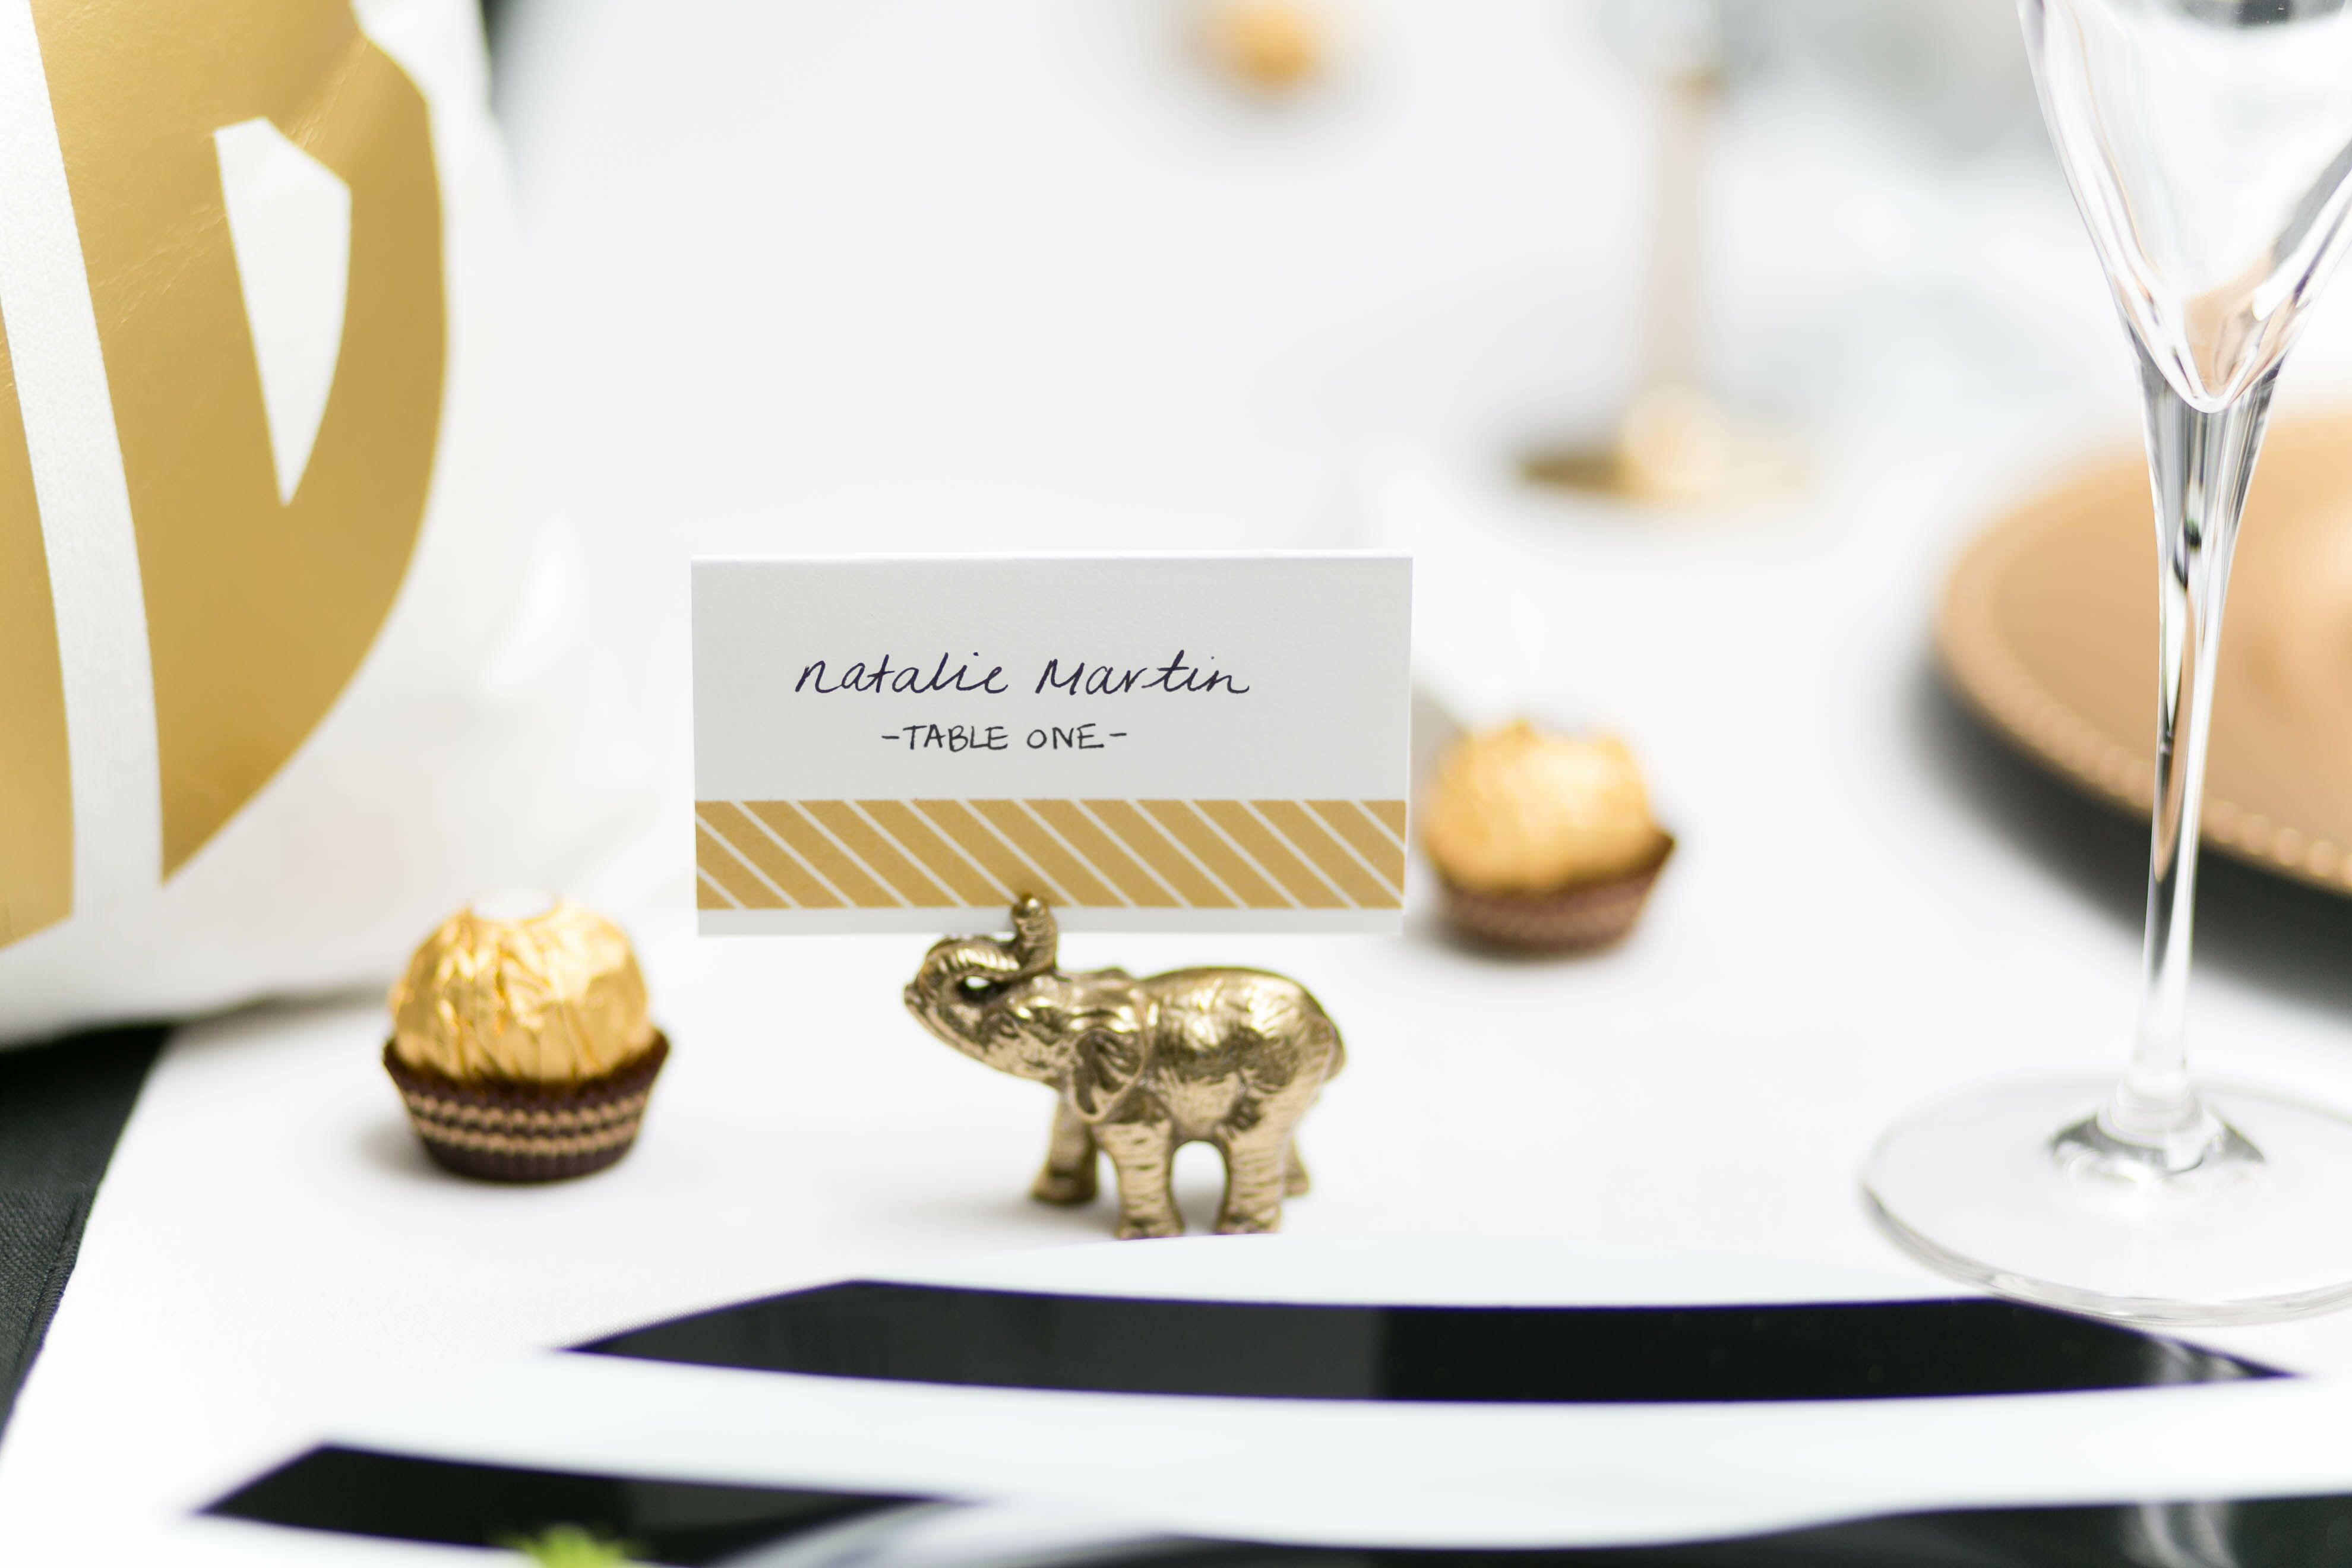 Gold Accents on Black-and-White-Striped Table